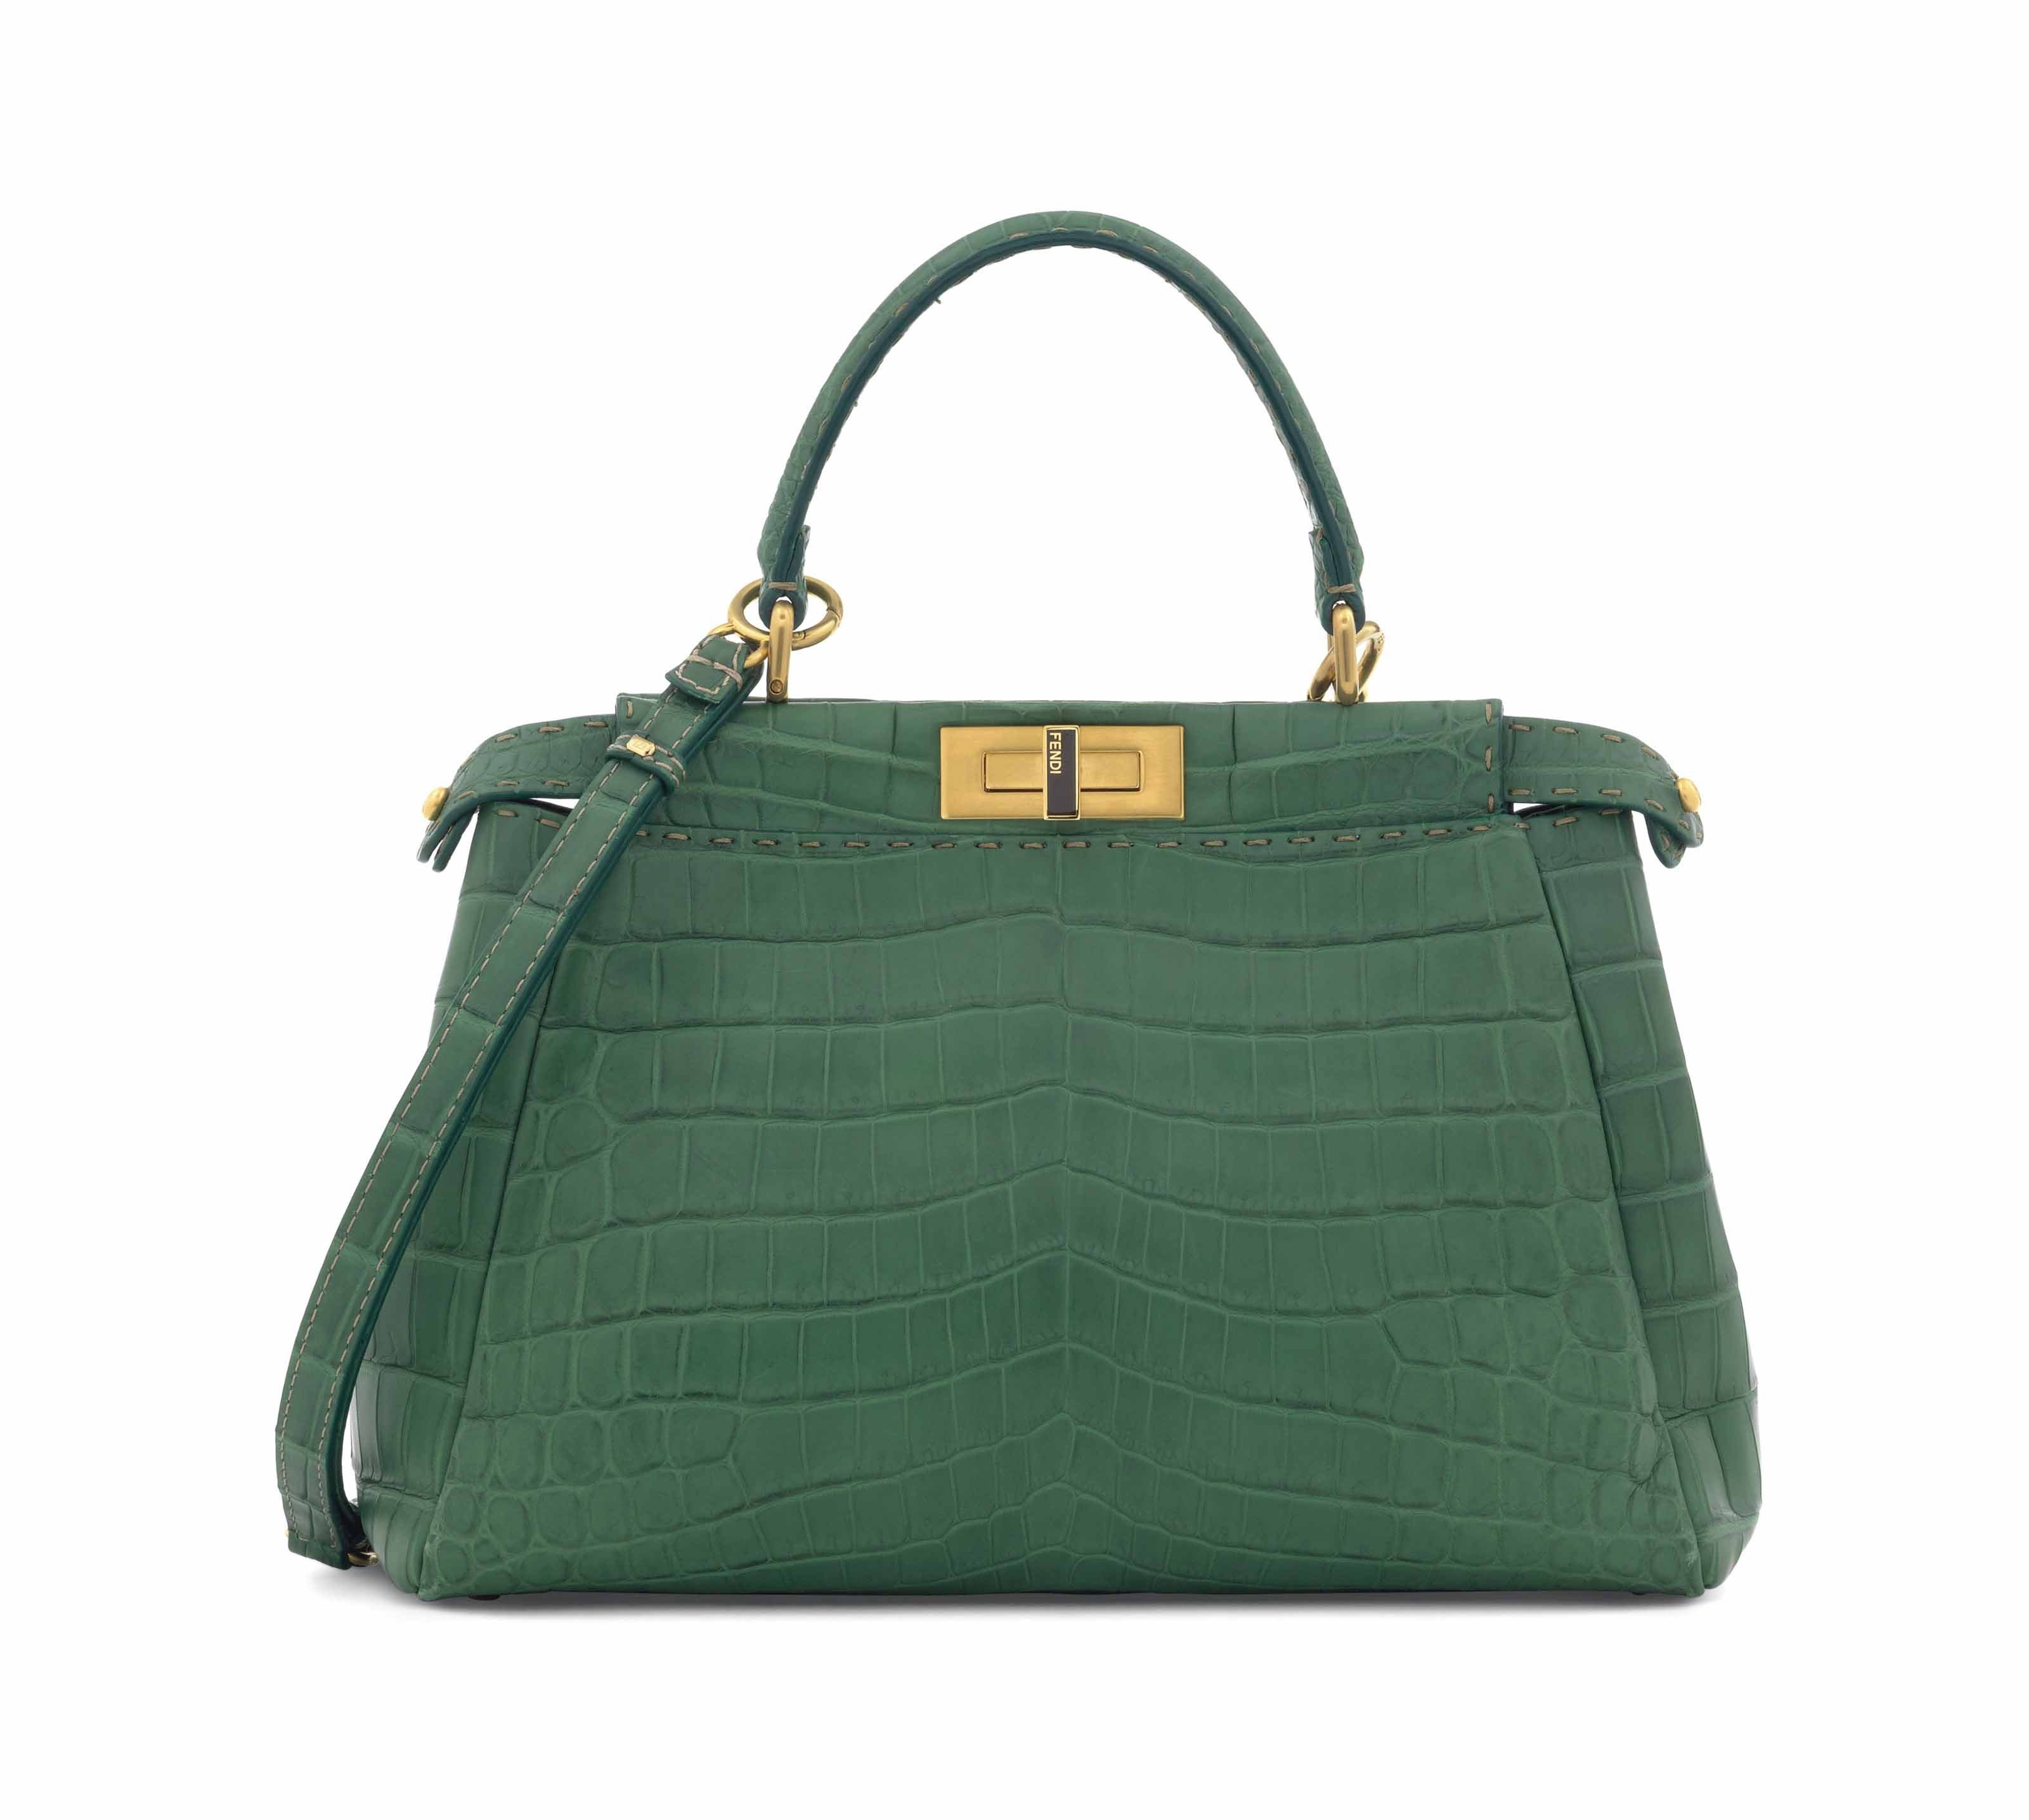 A LIMITED EDITION MATTE EMERALD GREEN NILOTICUS CROCODILE REGULAR SELLERIA PEEKABOO WITH BRUSHED GOLD HARDWARE